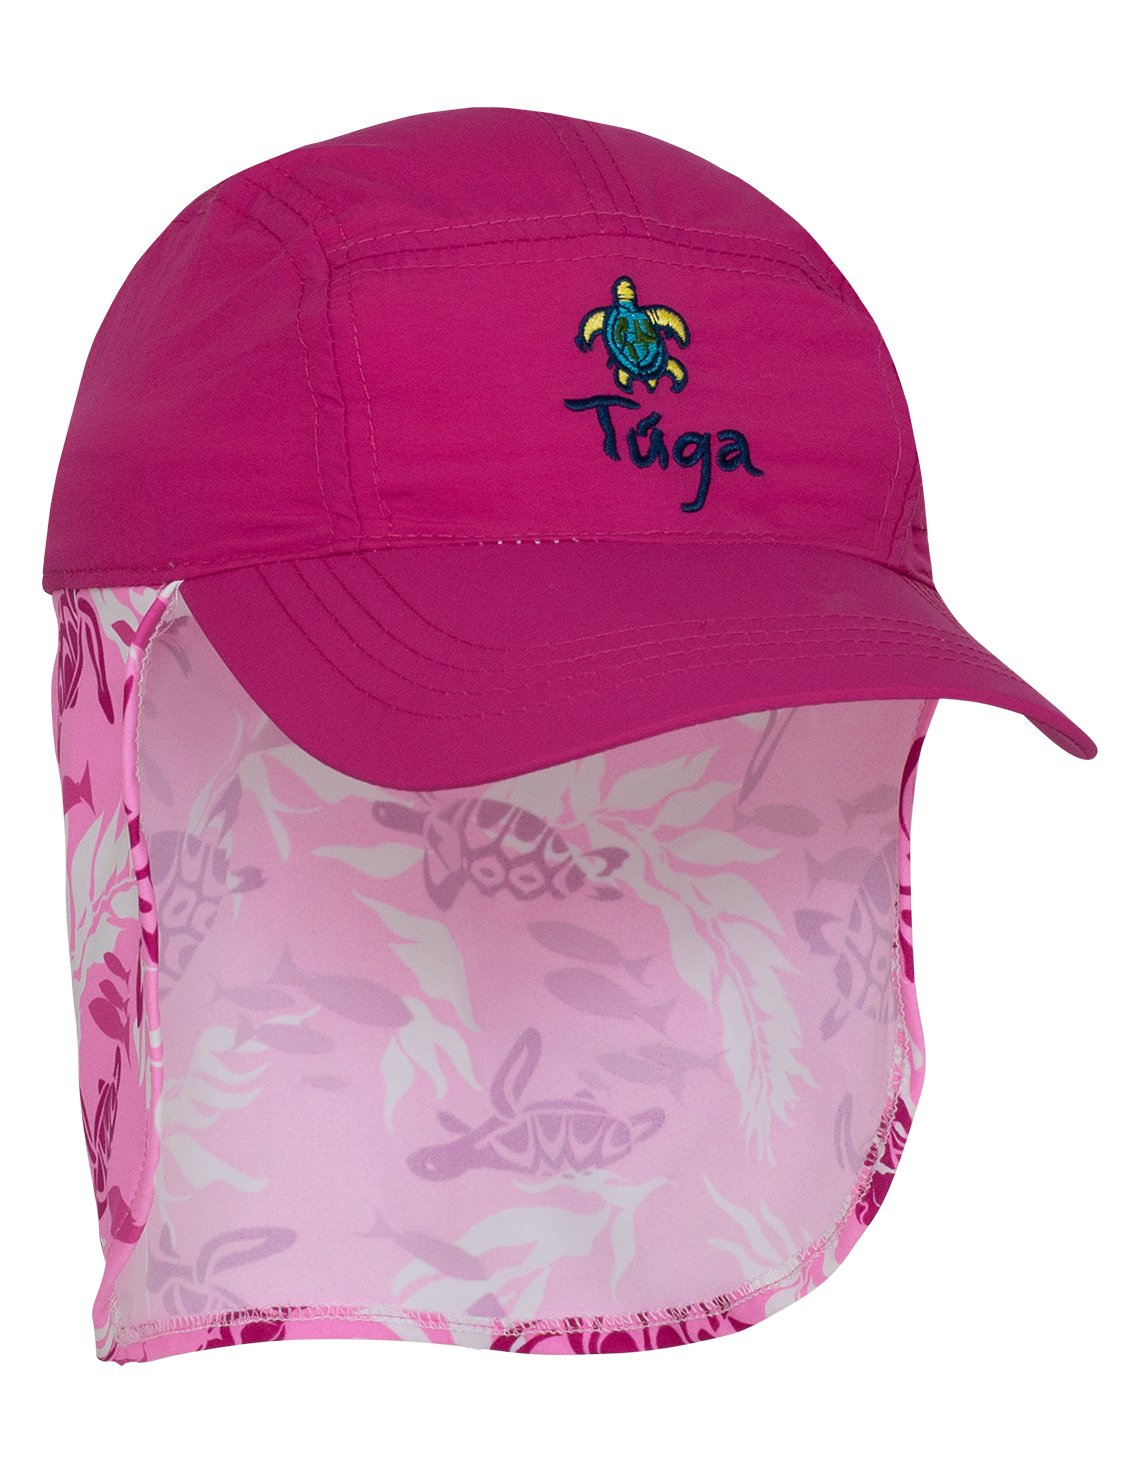 Tuga Girls Flap Hat (UPF 50+), Cotton Candy, Small